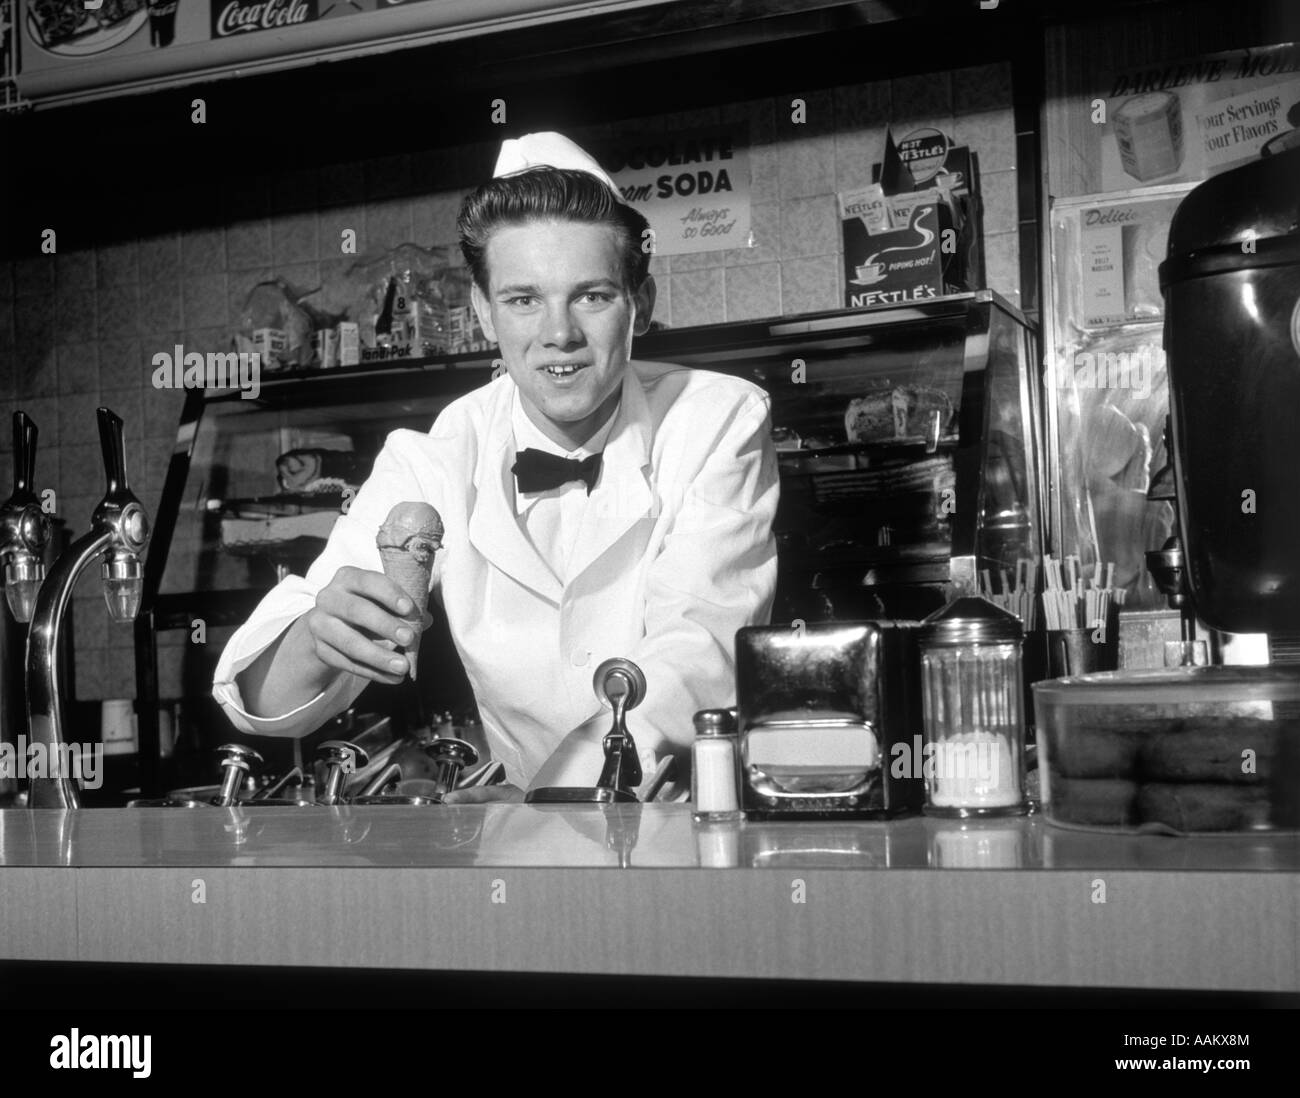 1950s SMILING YOUNG MAN SODA JERK LEANING ACROSS COUNTER LOOKING AT CAMERA SERVING ICE CREAM CONE Stock Photo